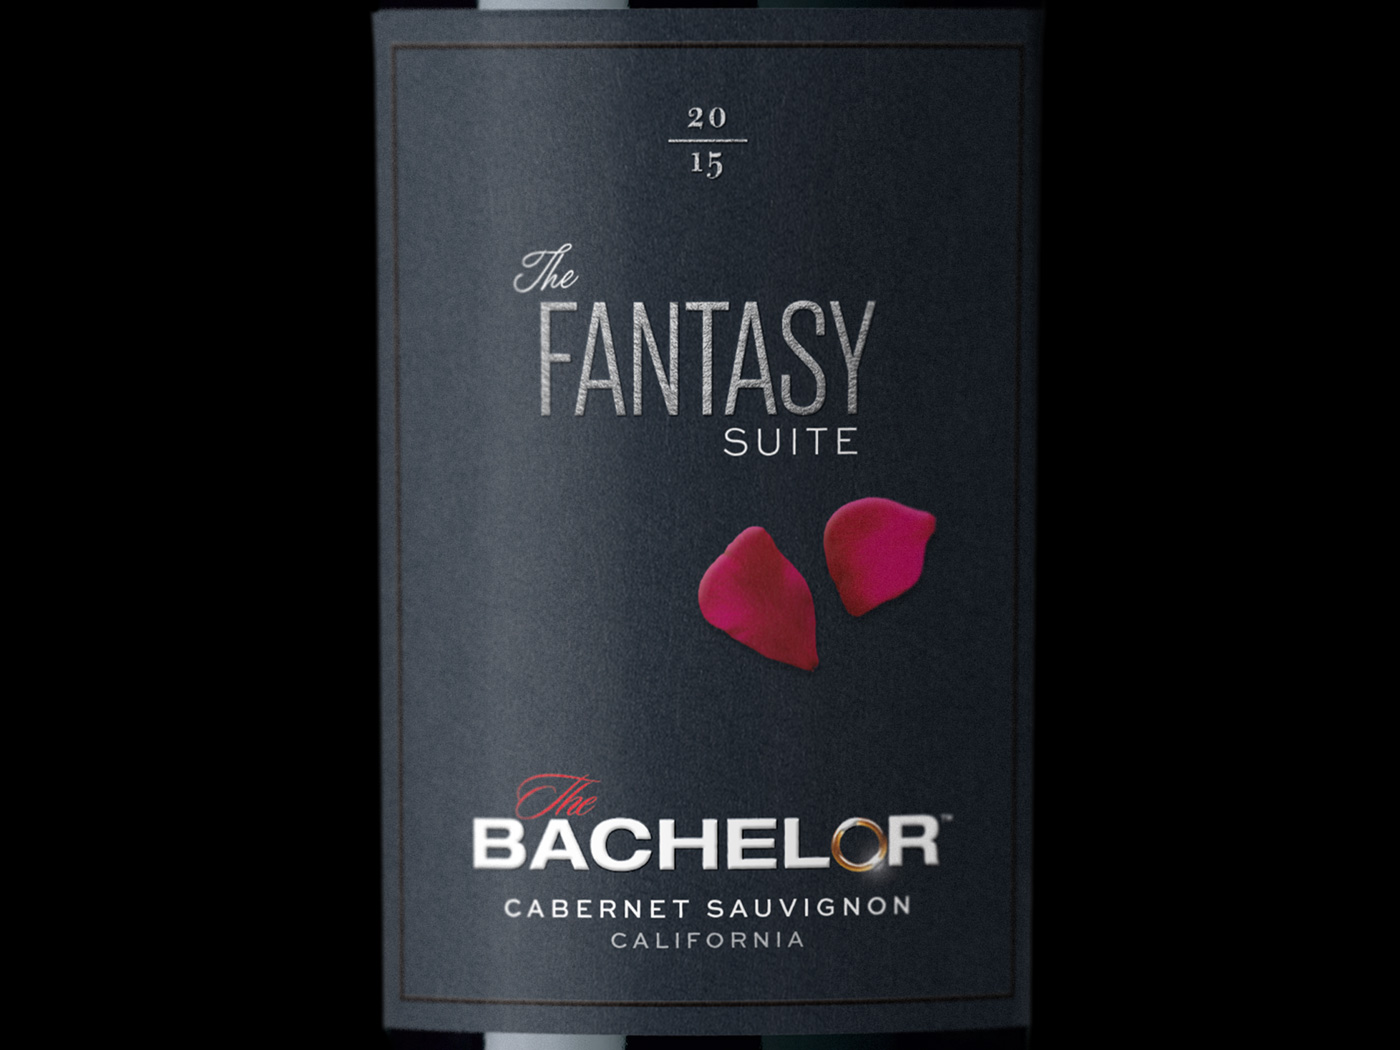 Bachelor Wines - The Fantasy Suite Label